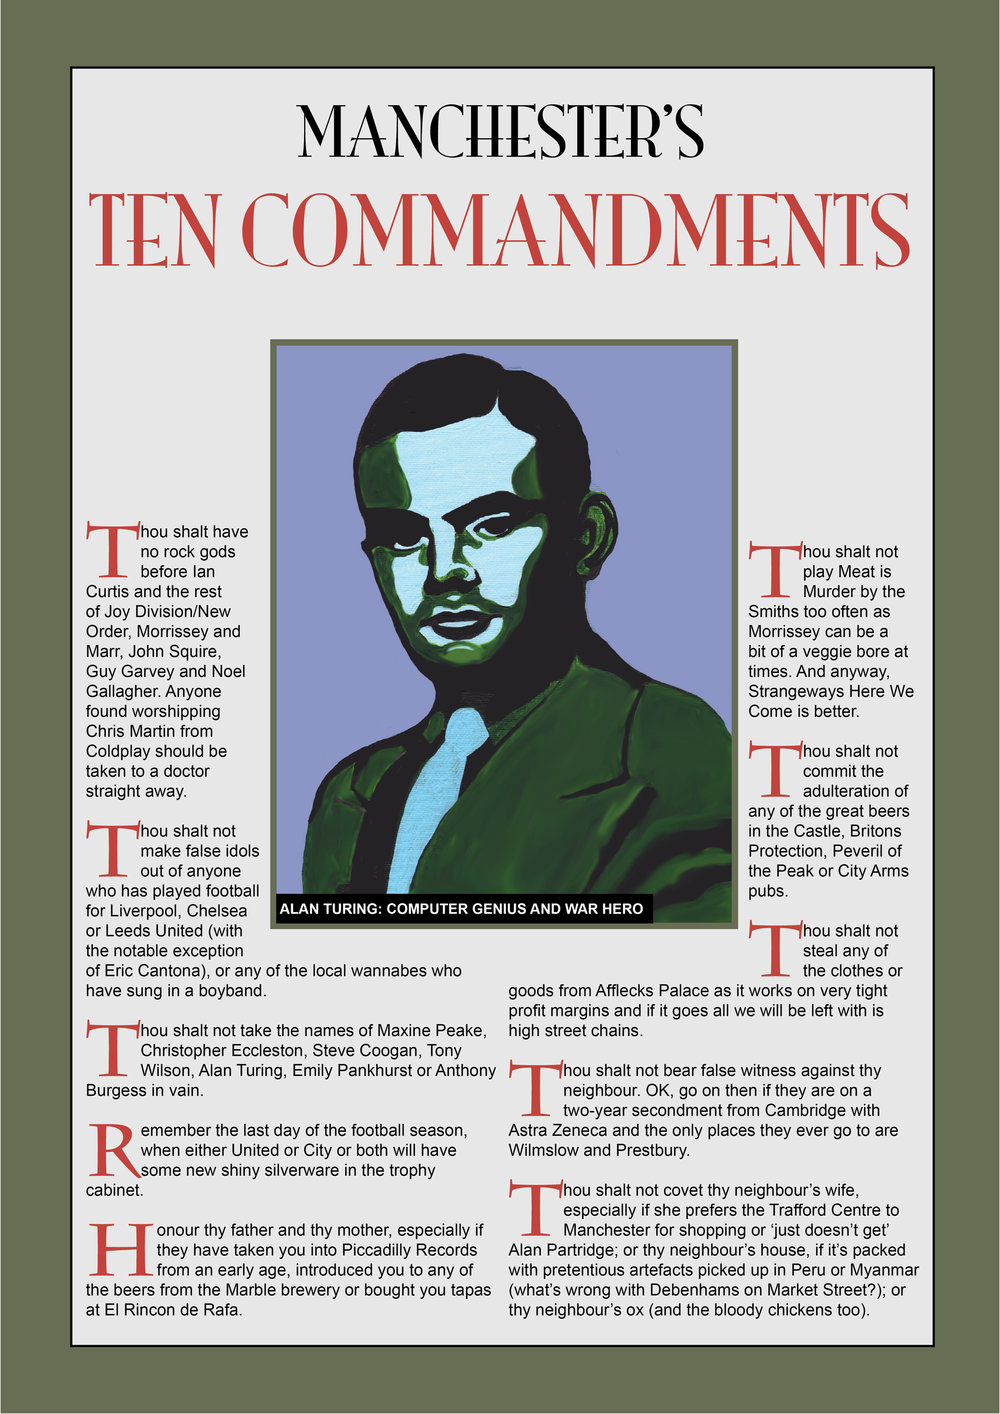 Manchester's 10 Commandments poster featuring Alan Turing